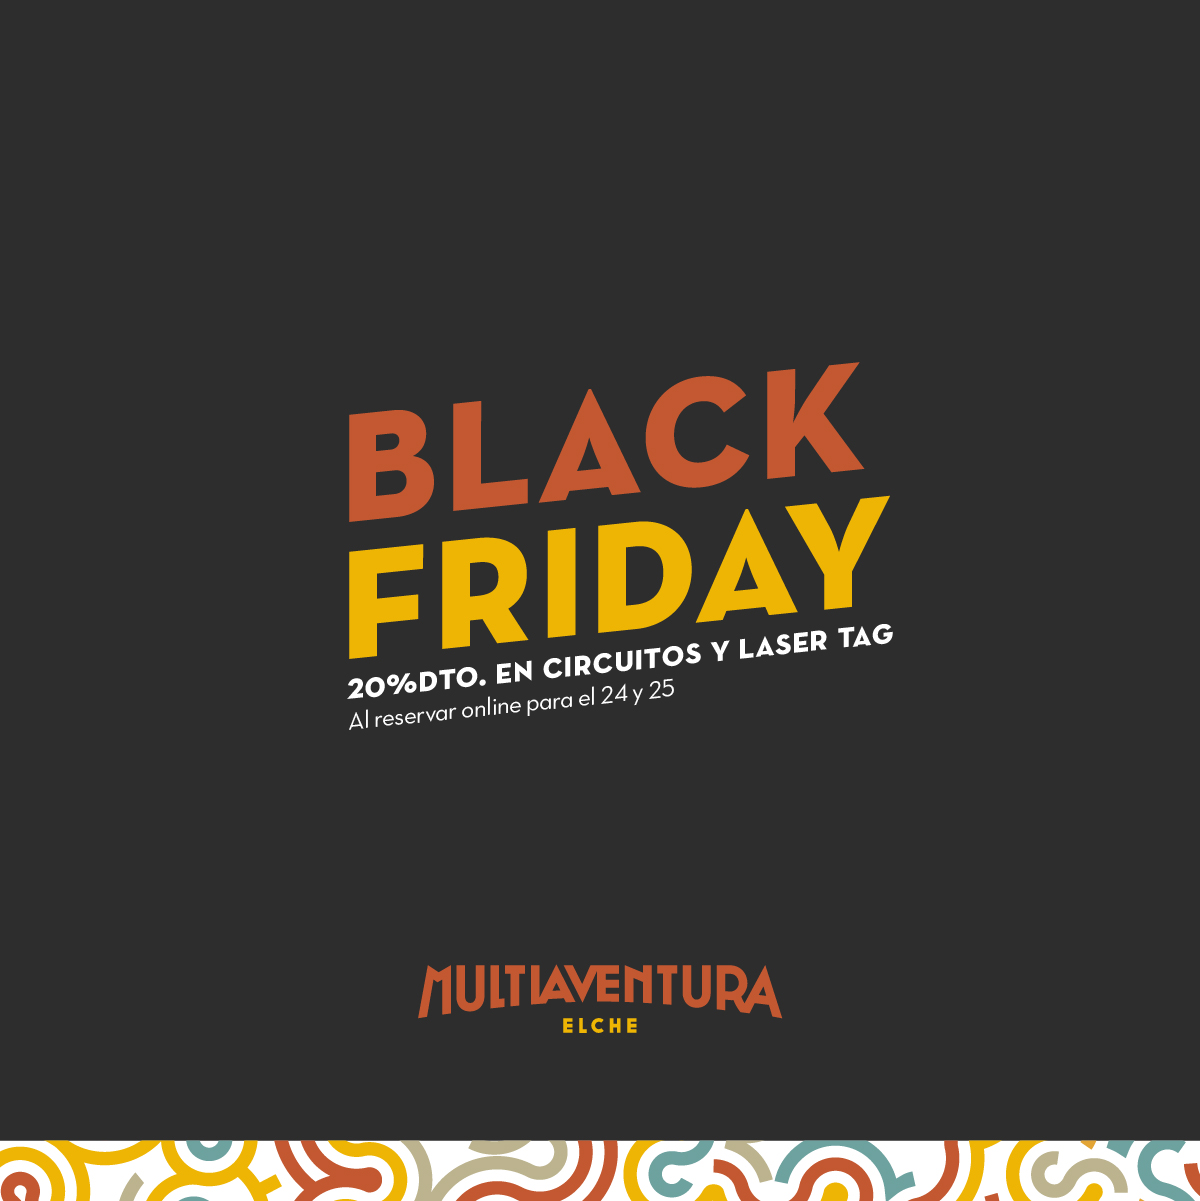 Black Friday Multiaventura Elche